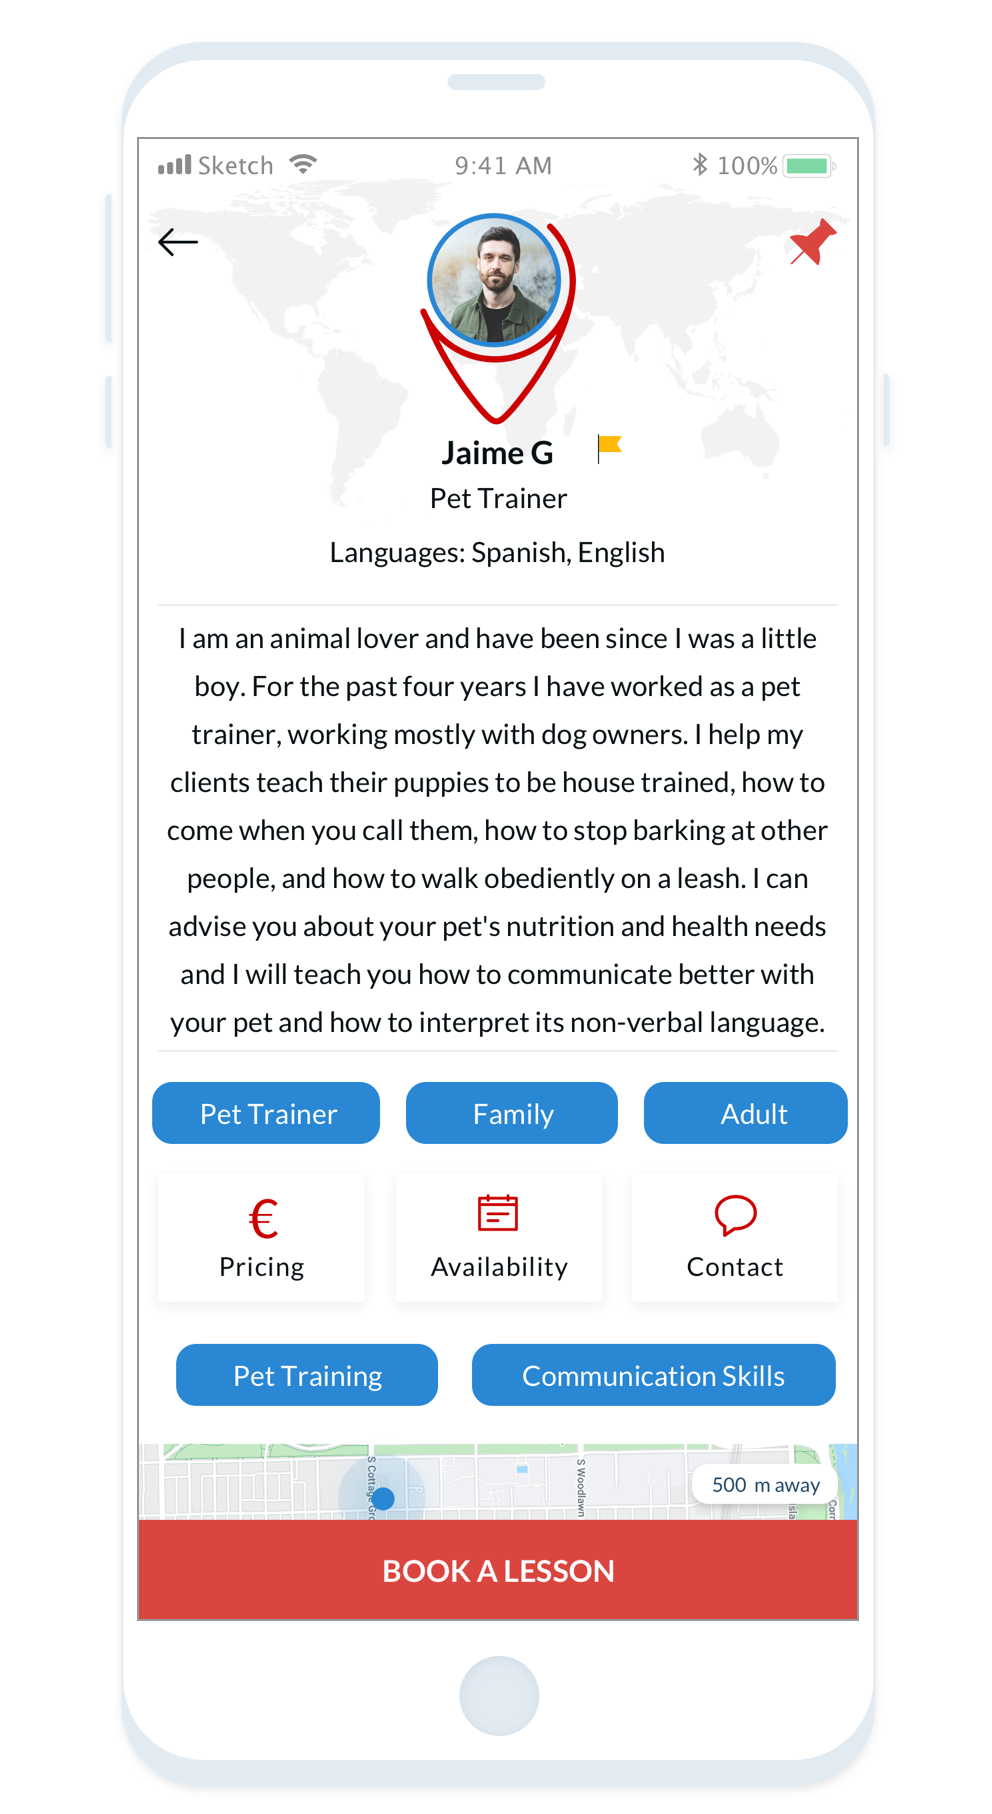 Searching for dog training jobs? Find pet owners on Tutor Around app looking for a professional to help train their dog.